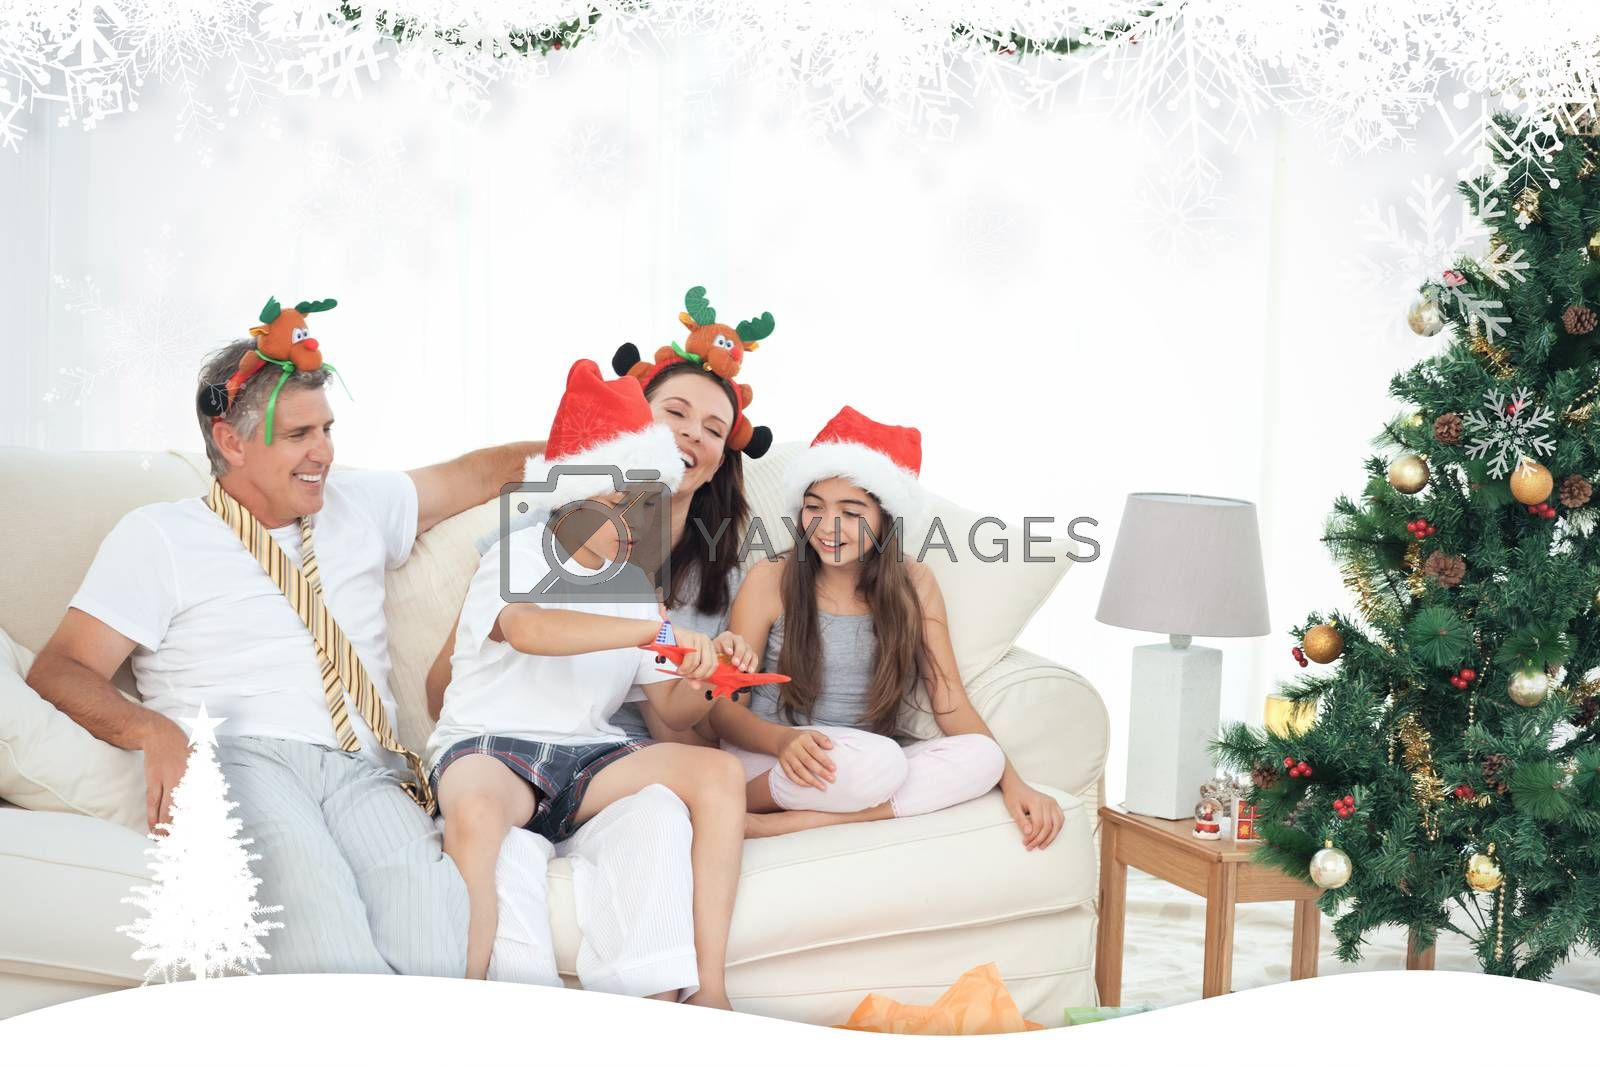 Family on Christmas day looking at their presents at home against fir tree forest and snowflakes